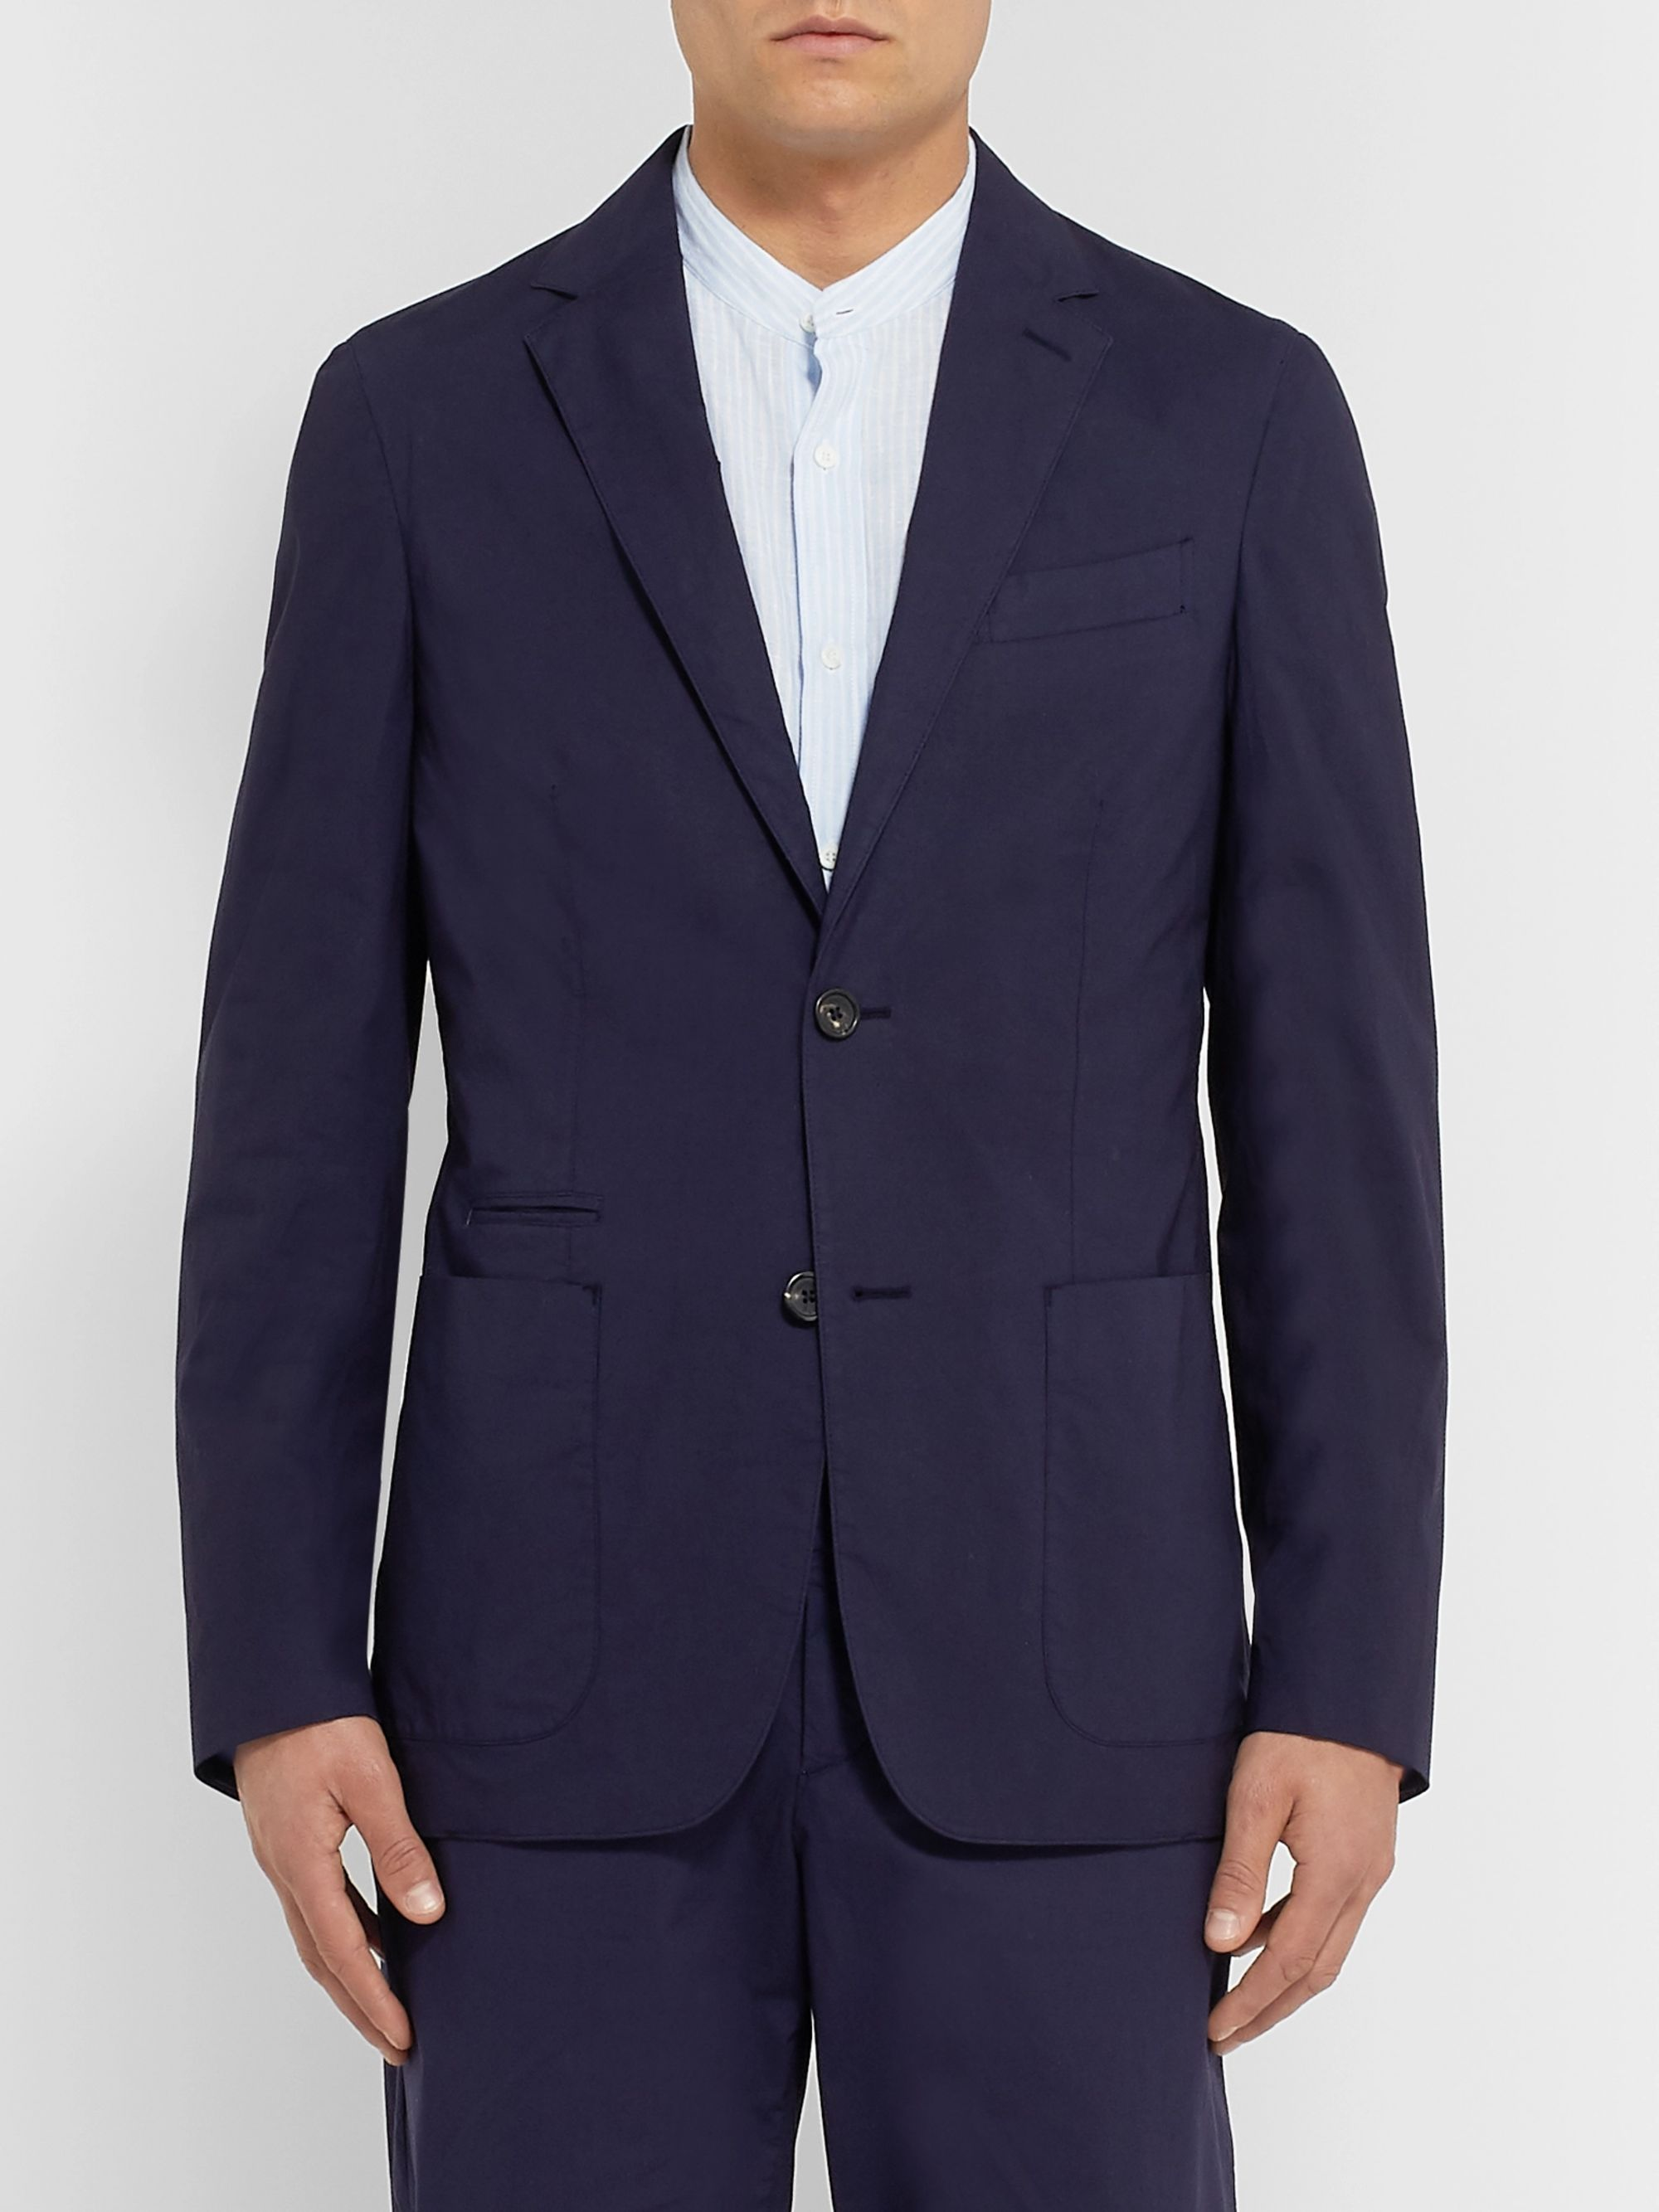 Ermenegildo Zegna Navy Slim-Fit Unstructured Garment-Dyed Stretch-Cotton Suit Jacket